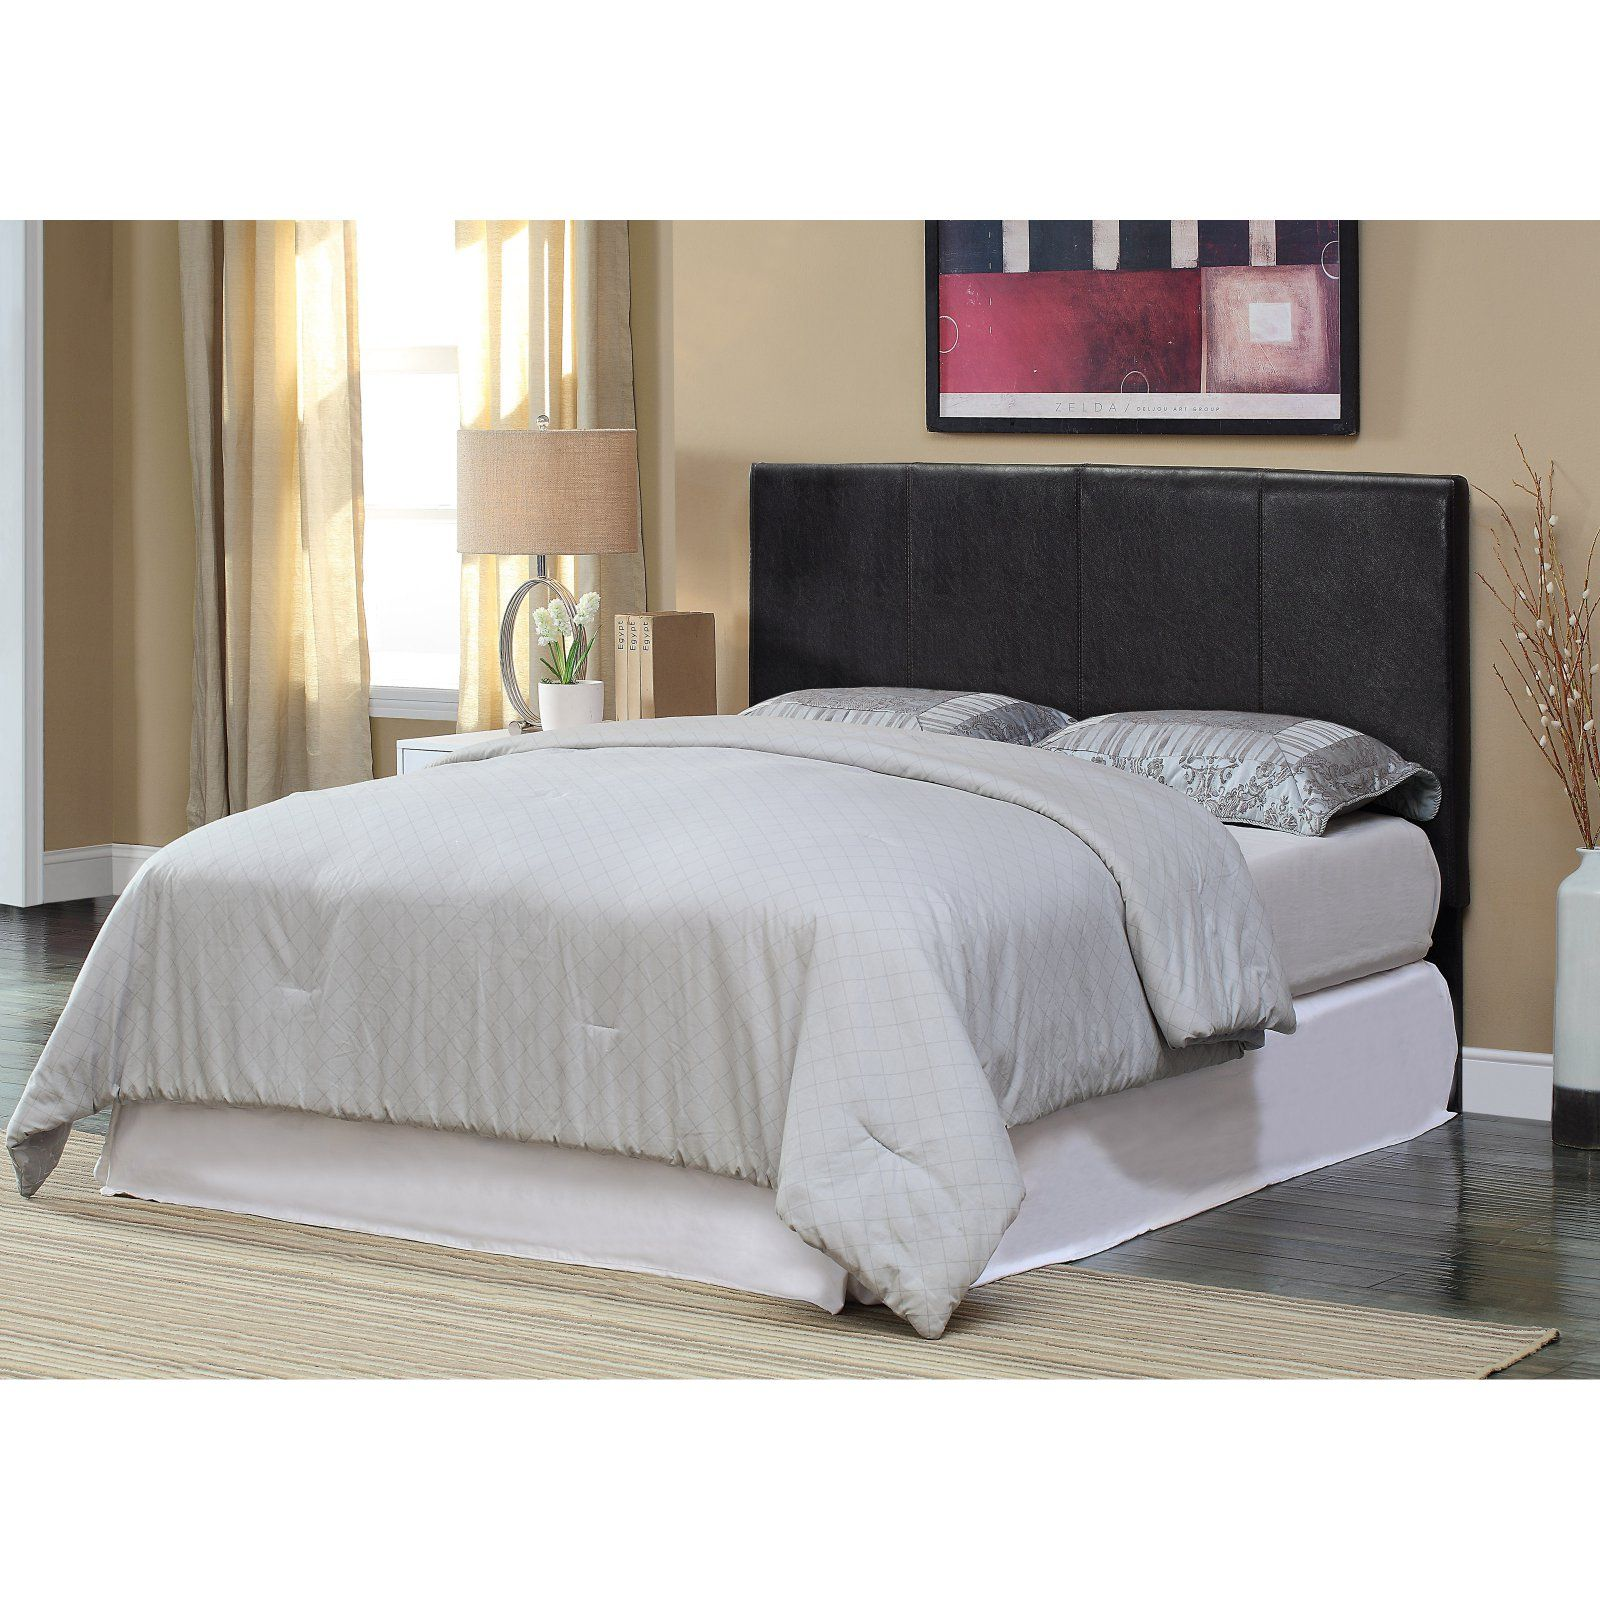 Huntington Bedroom Furniture Furniture Of America Huntington Upholstered Headboard Espresso